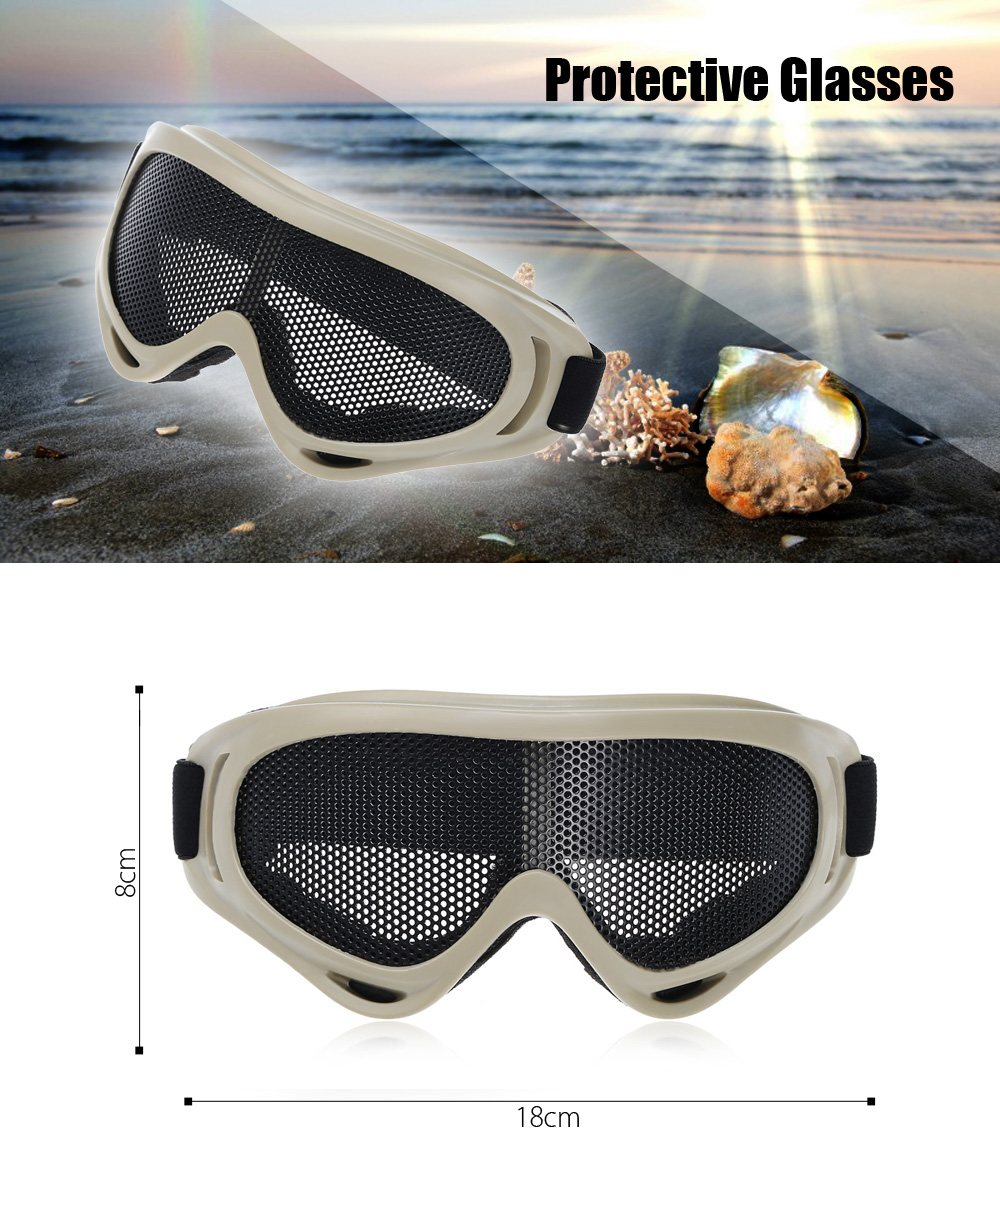 Shock-resistant Protective Glasses Goggle with Metal Net Lens for Outdoor Adventuring